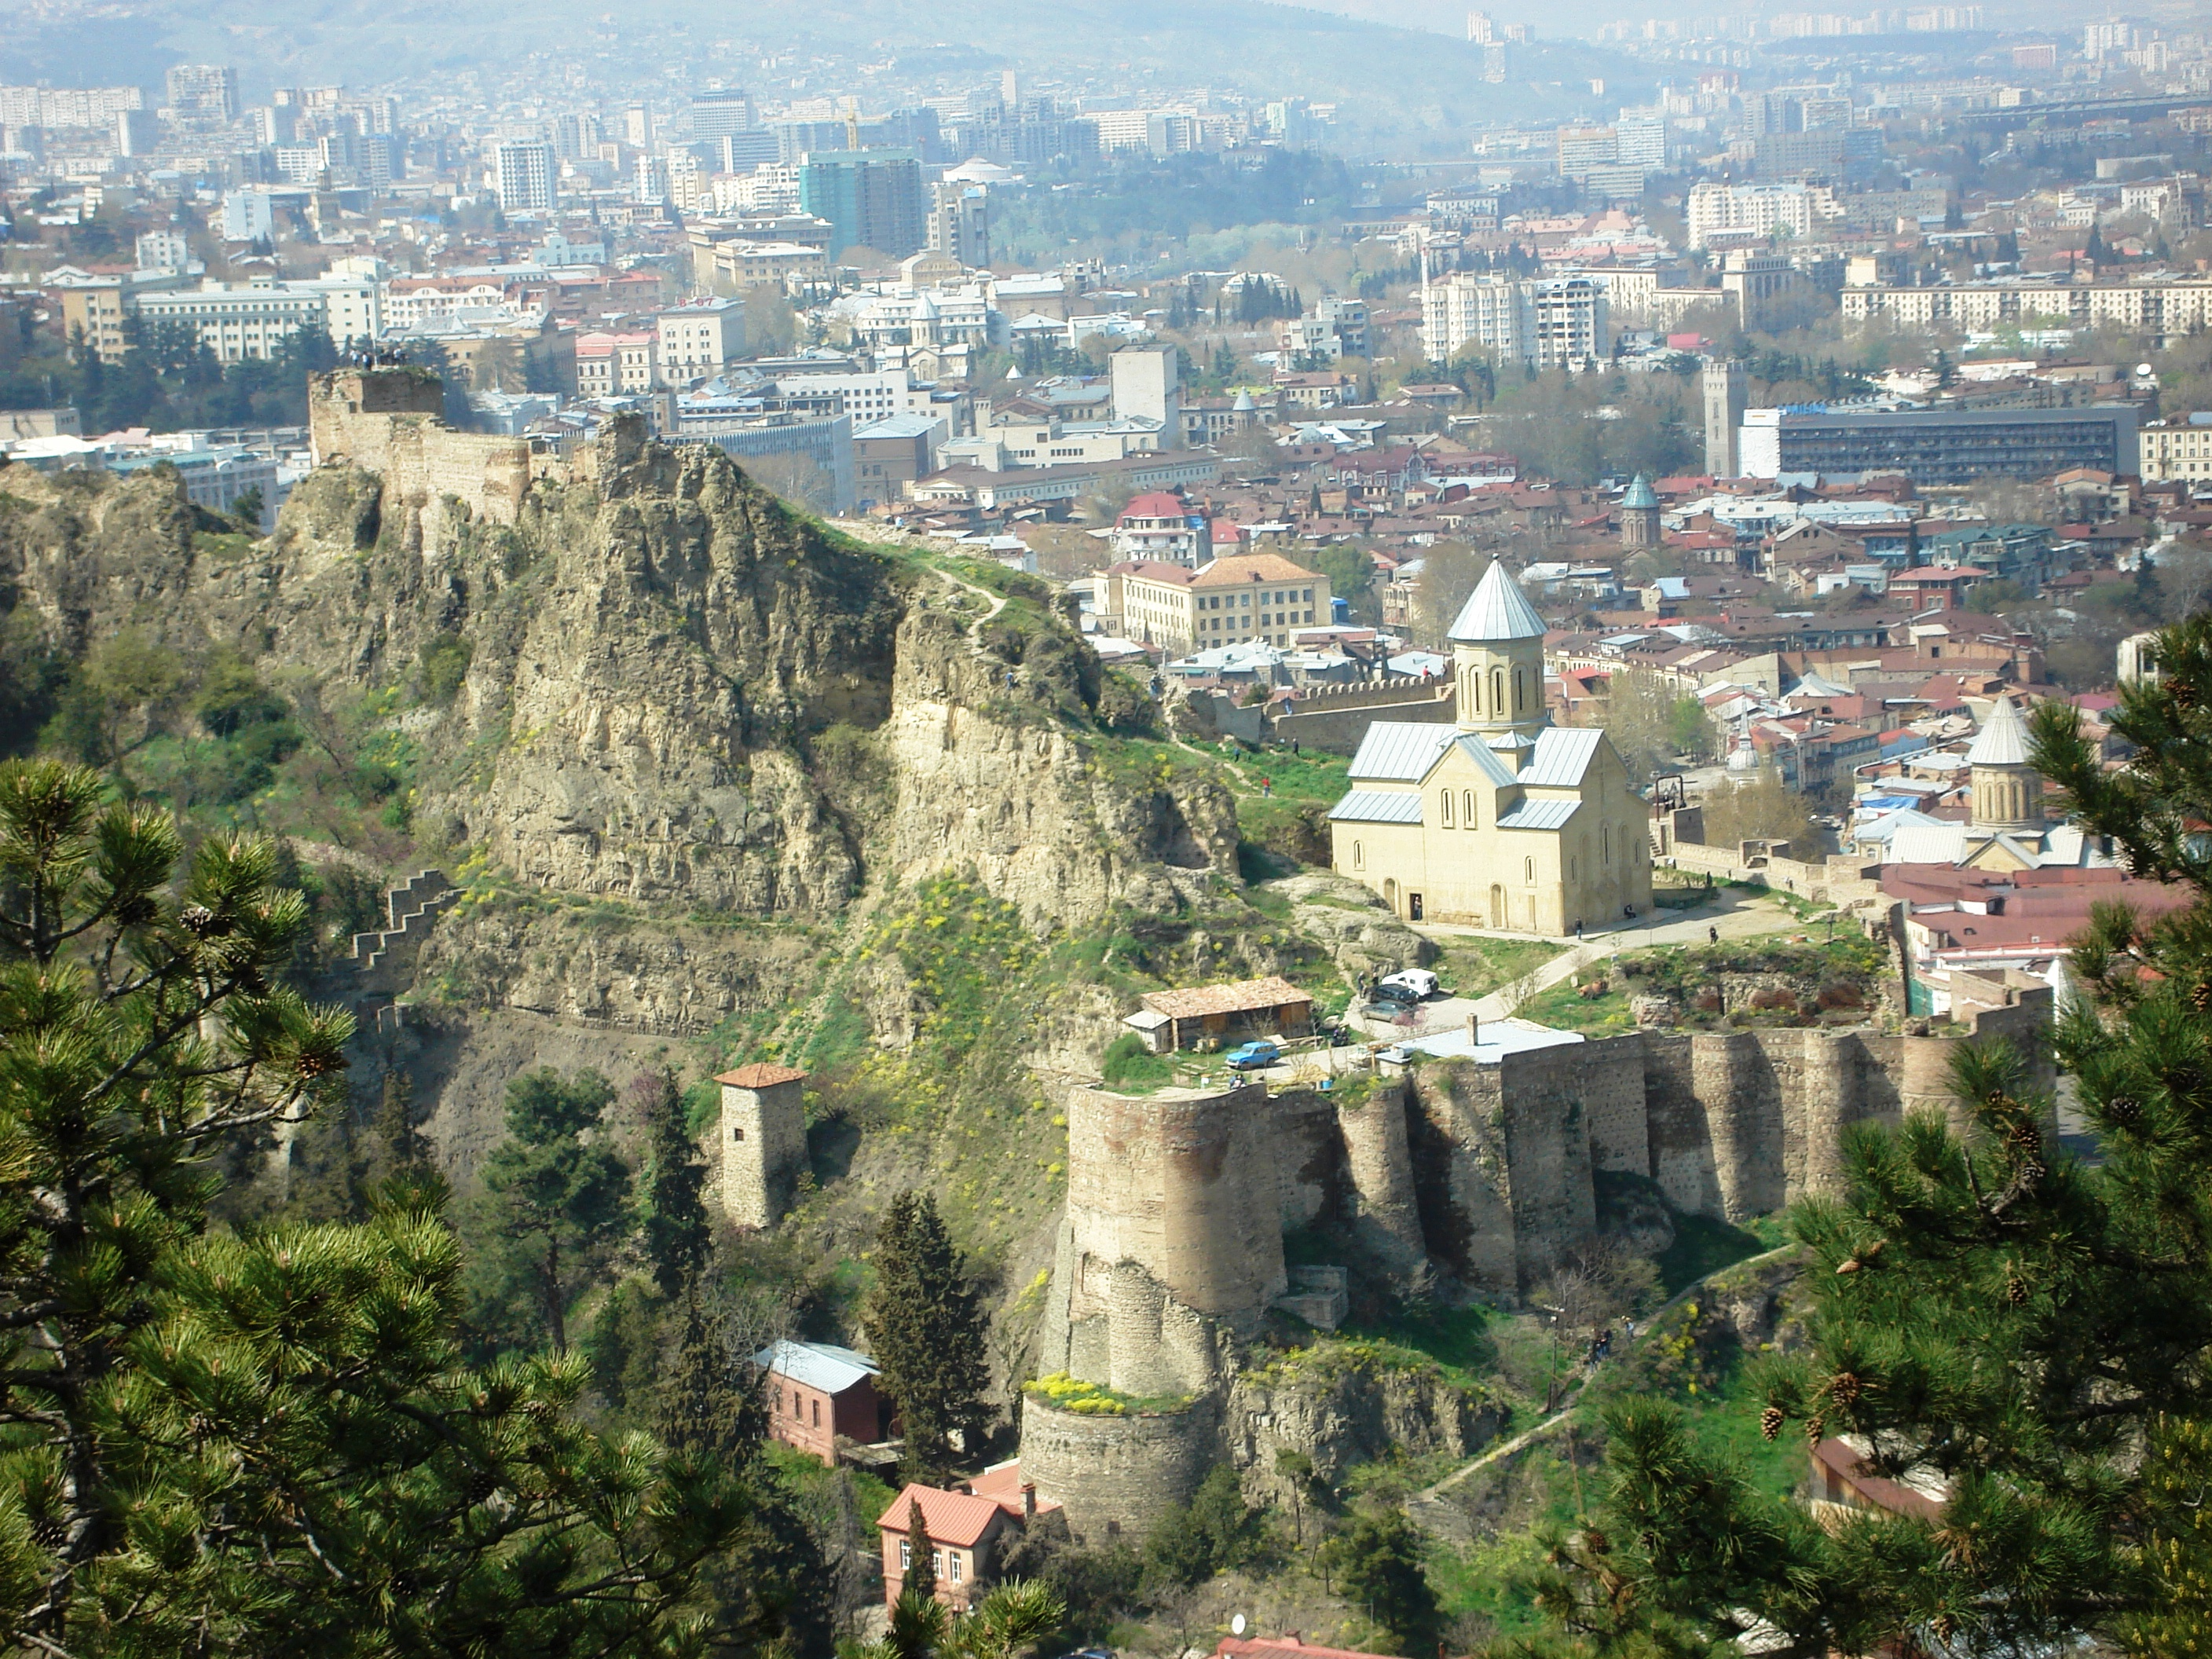 dating georgia tbilisi Best romantic restaurants in tbilisi, georgia: find tripadvisor traveler reviews of the best tbilisi romantic restaurants and search by price, location, and more.